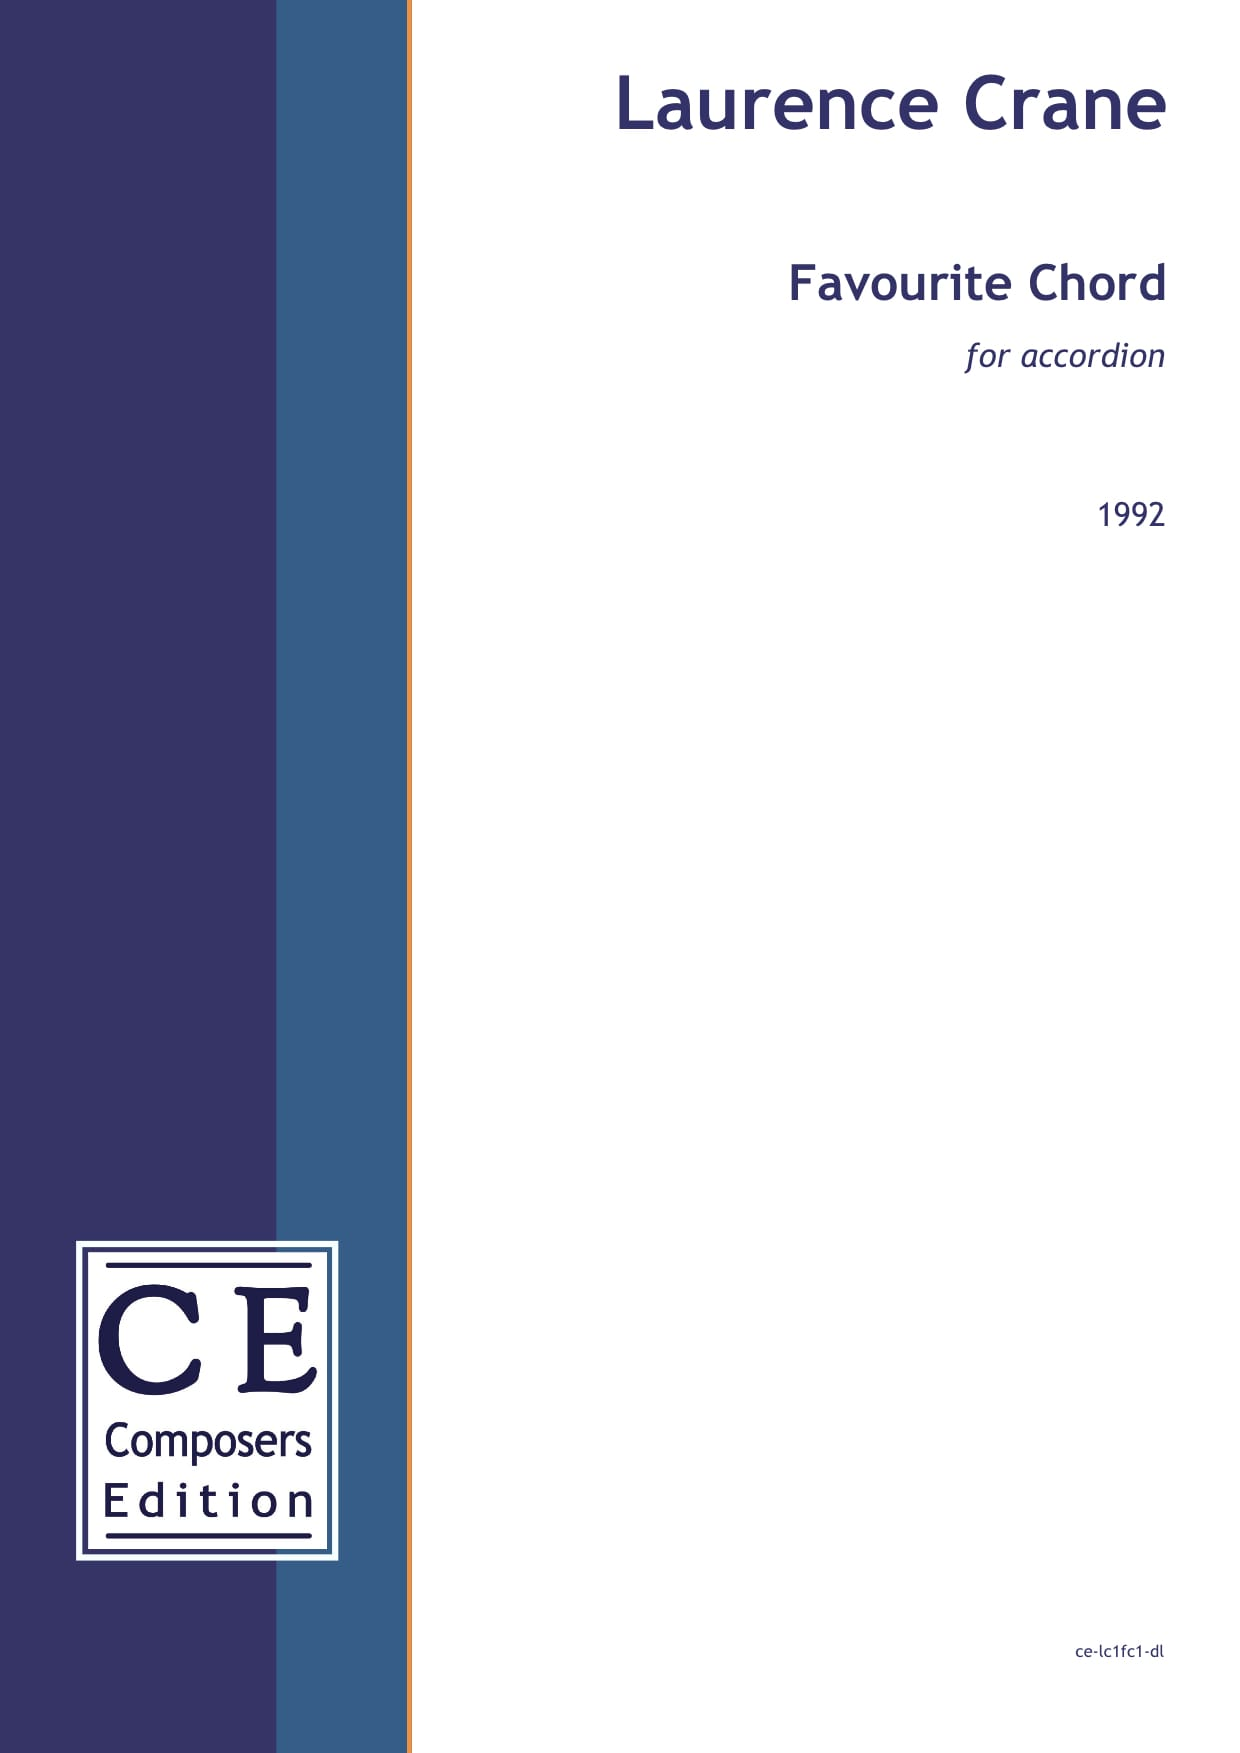 Laurence Crane: Favourite Chord for accordion